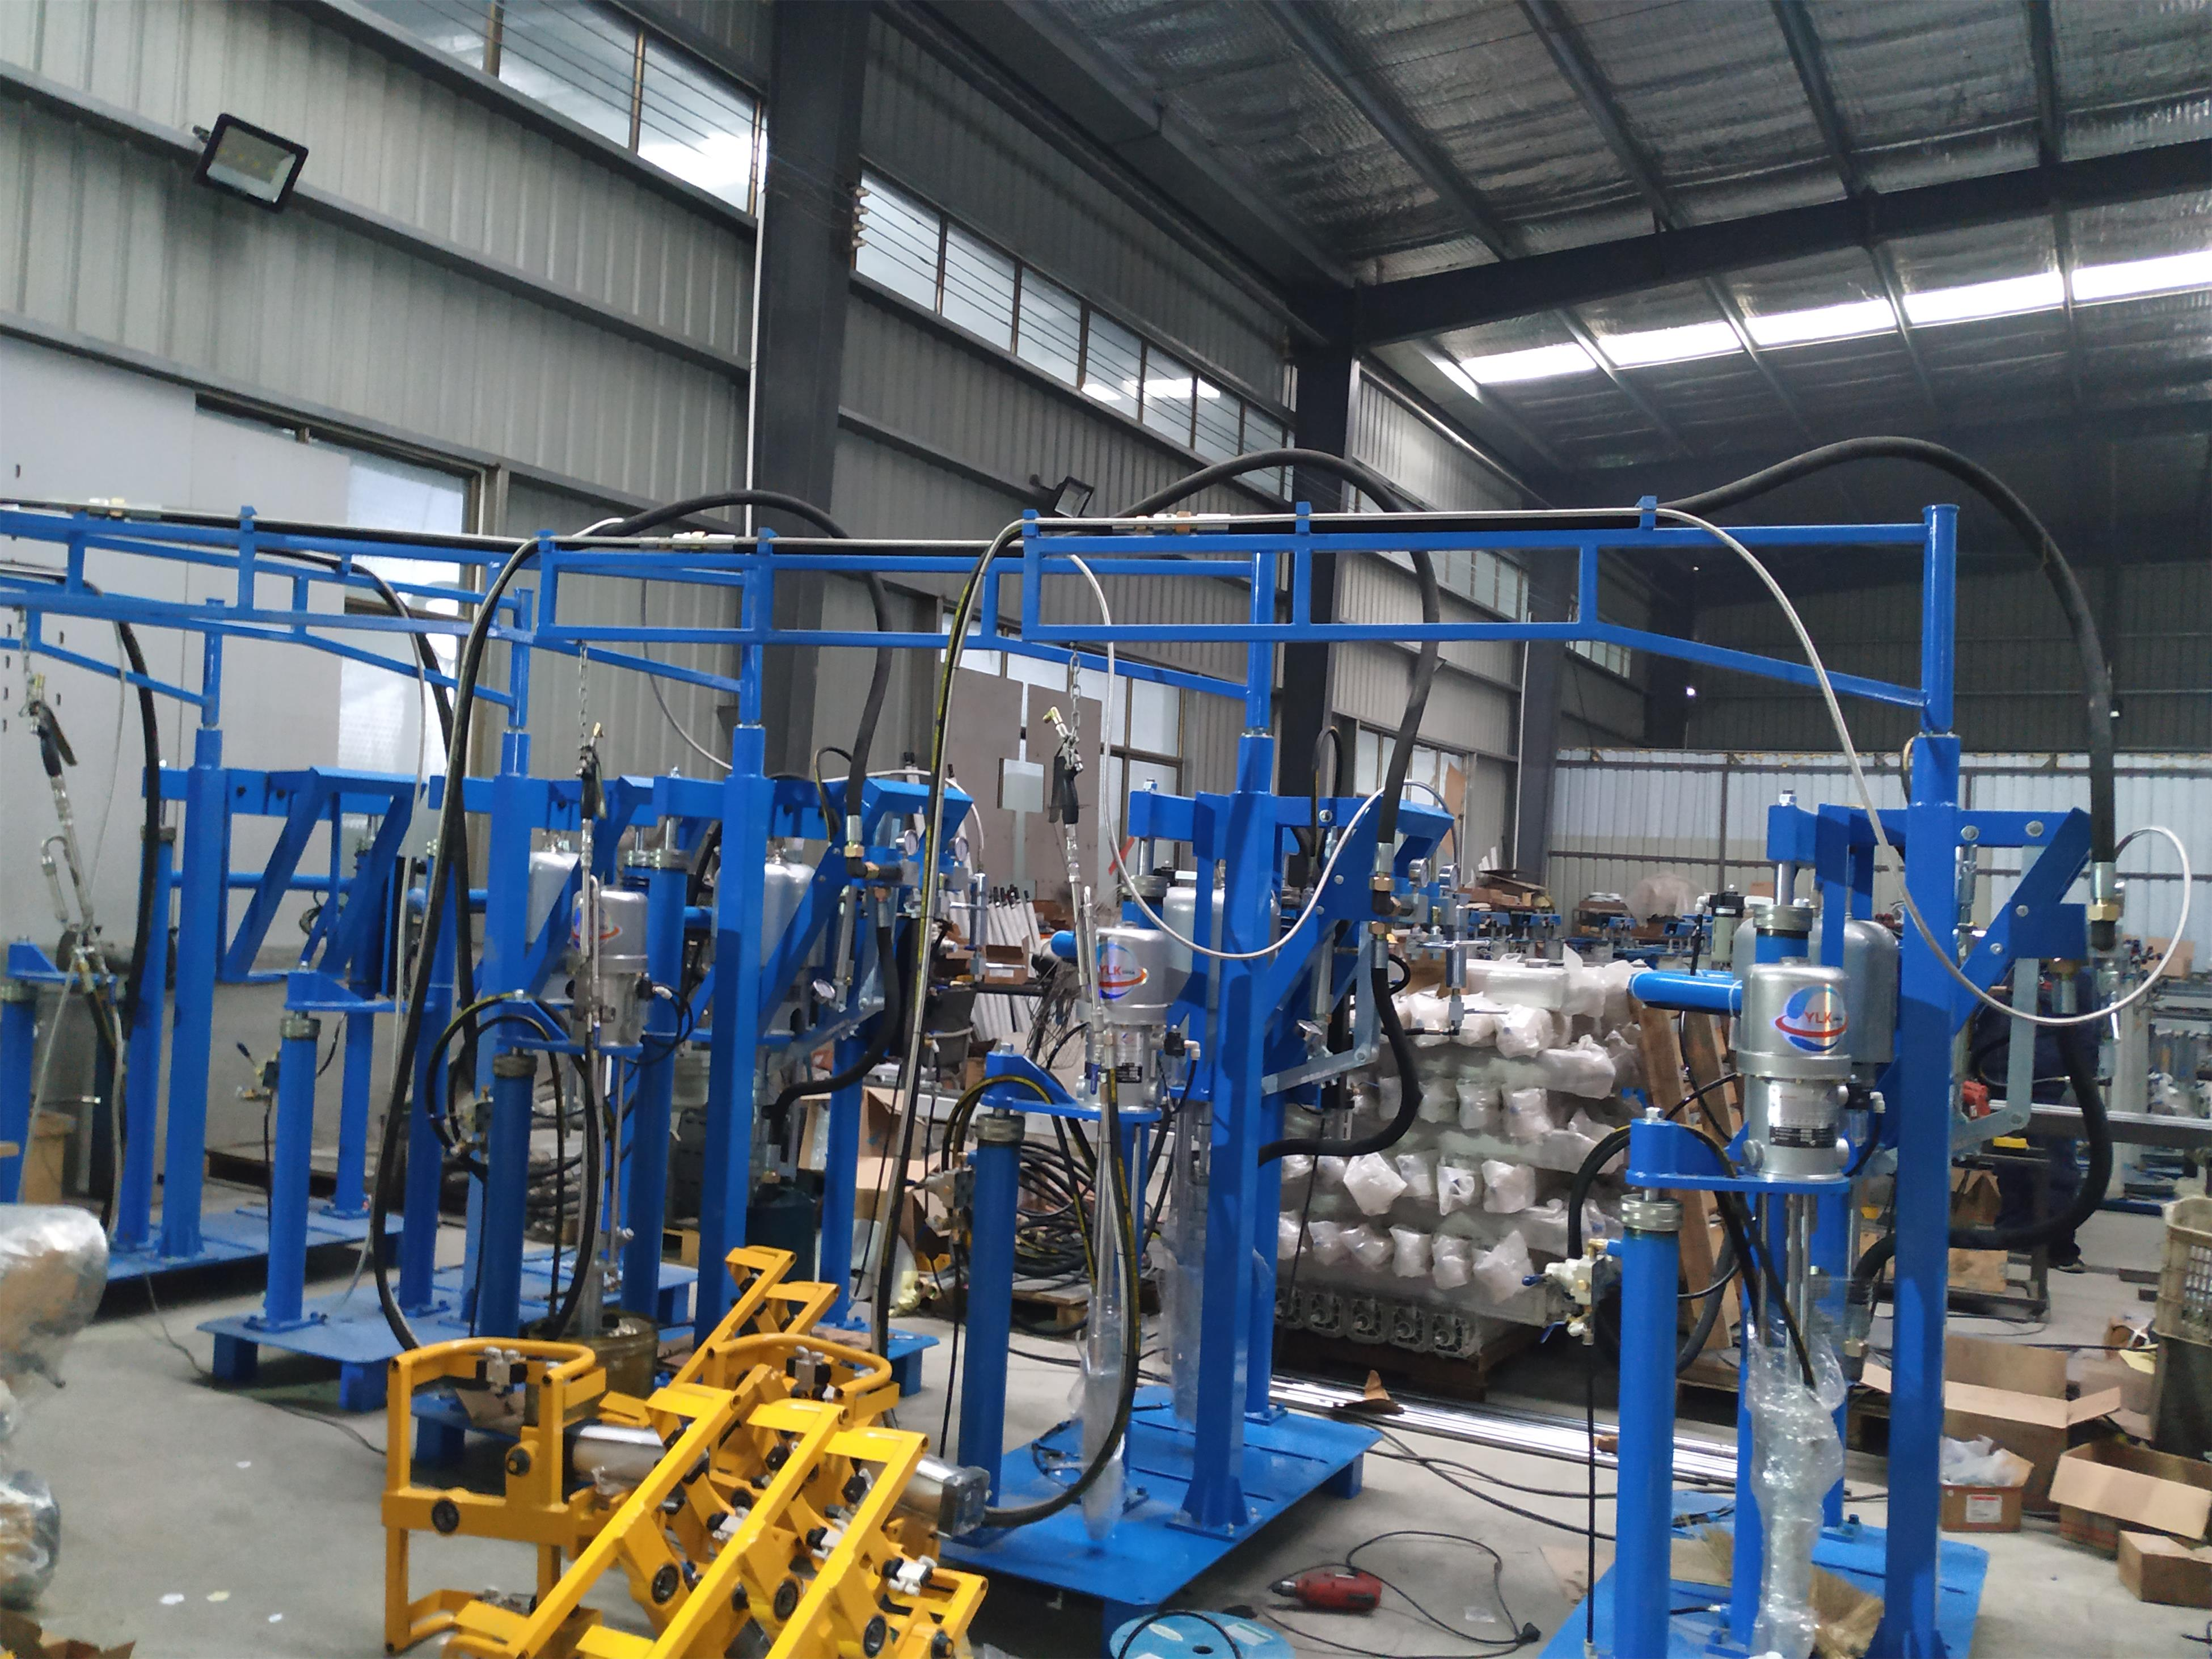 ST06 Korea Pump sealant spreading equipment